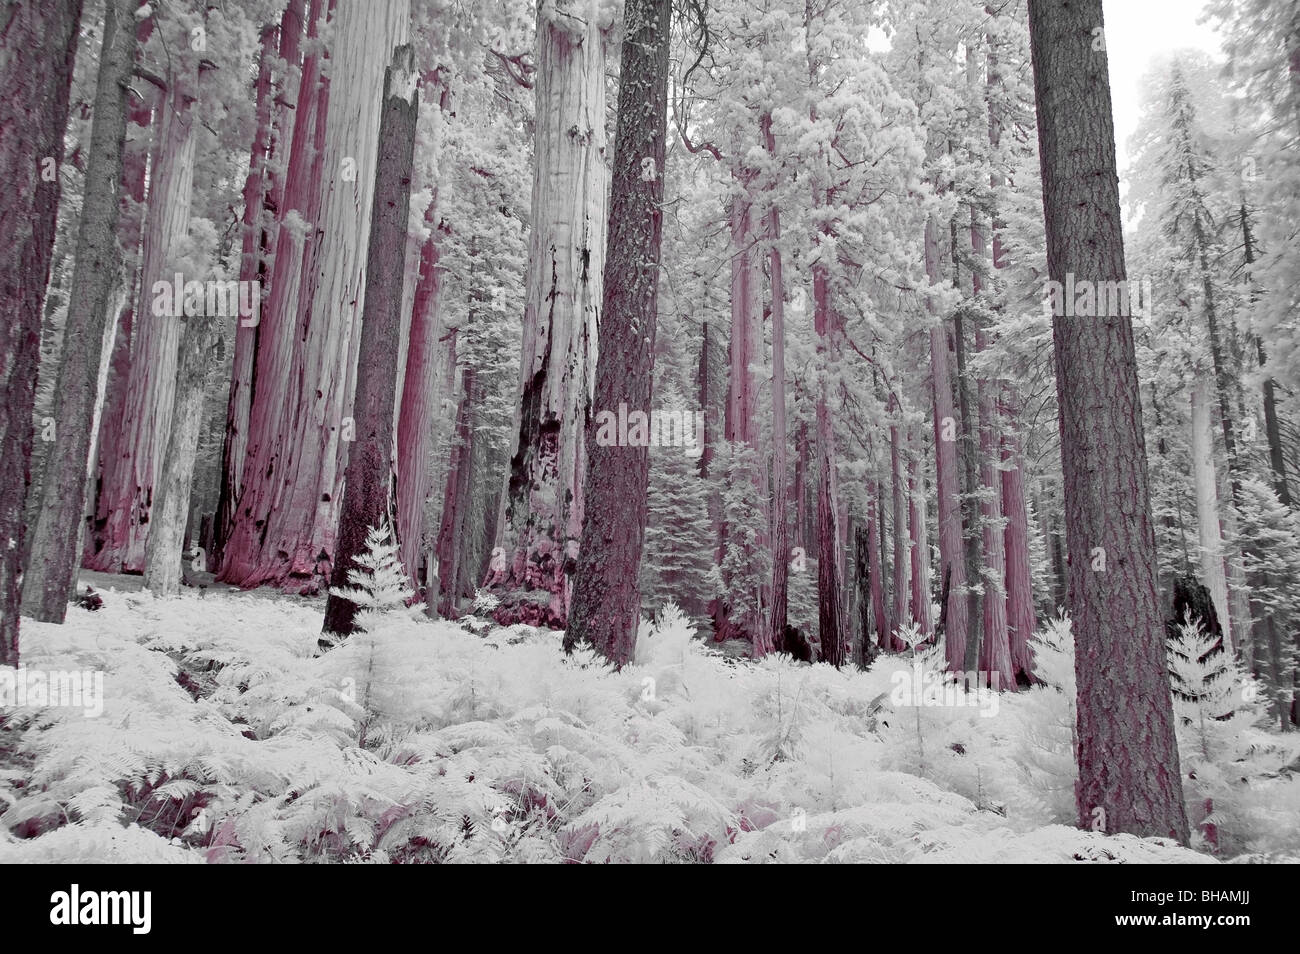 Disparo de infrarrojos de los bosques de sequoia Sequoia National Park, California, EE.UU. Imagen De Stock